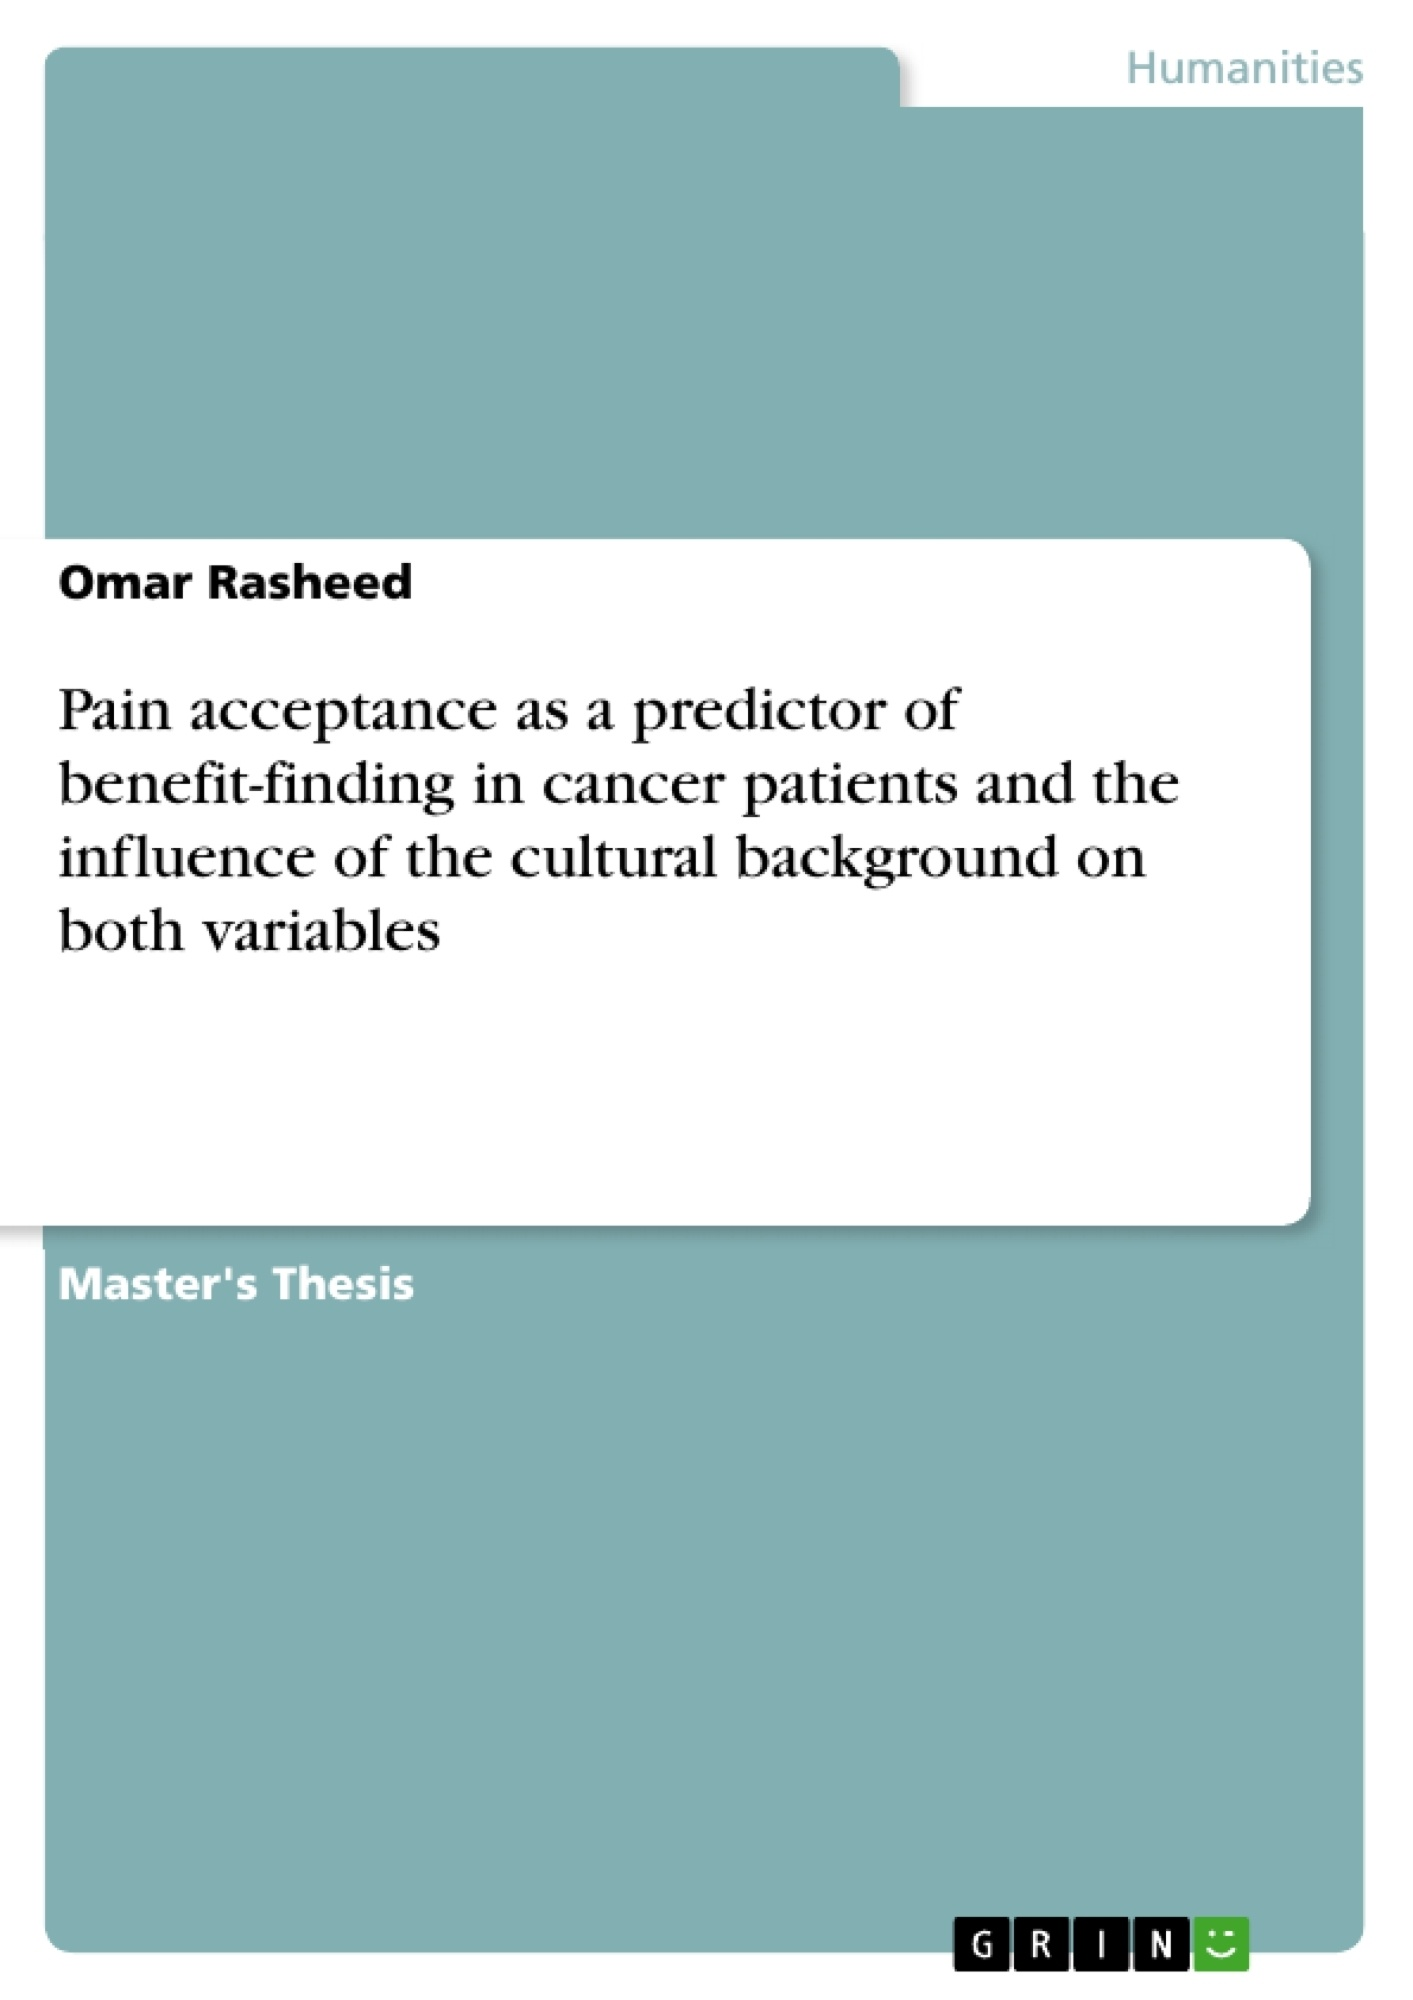 Title: Pain acceptance as a predictor of benefit-finding in cancer patients and the influence of the cultural background on both variables